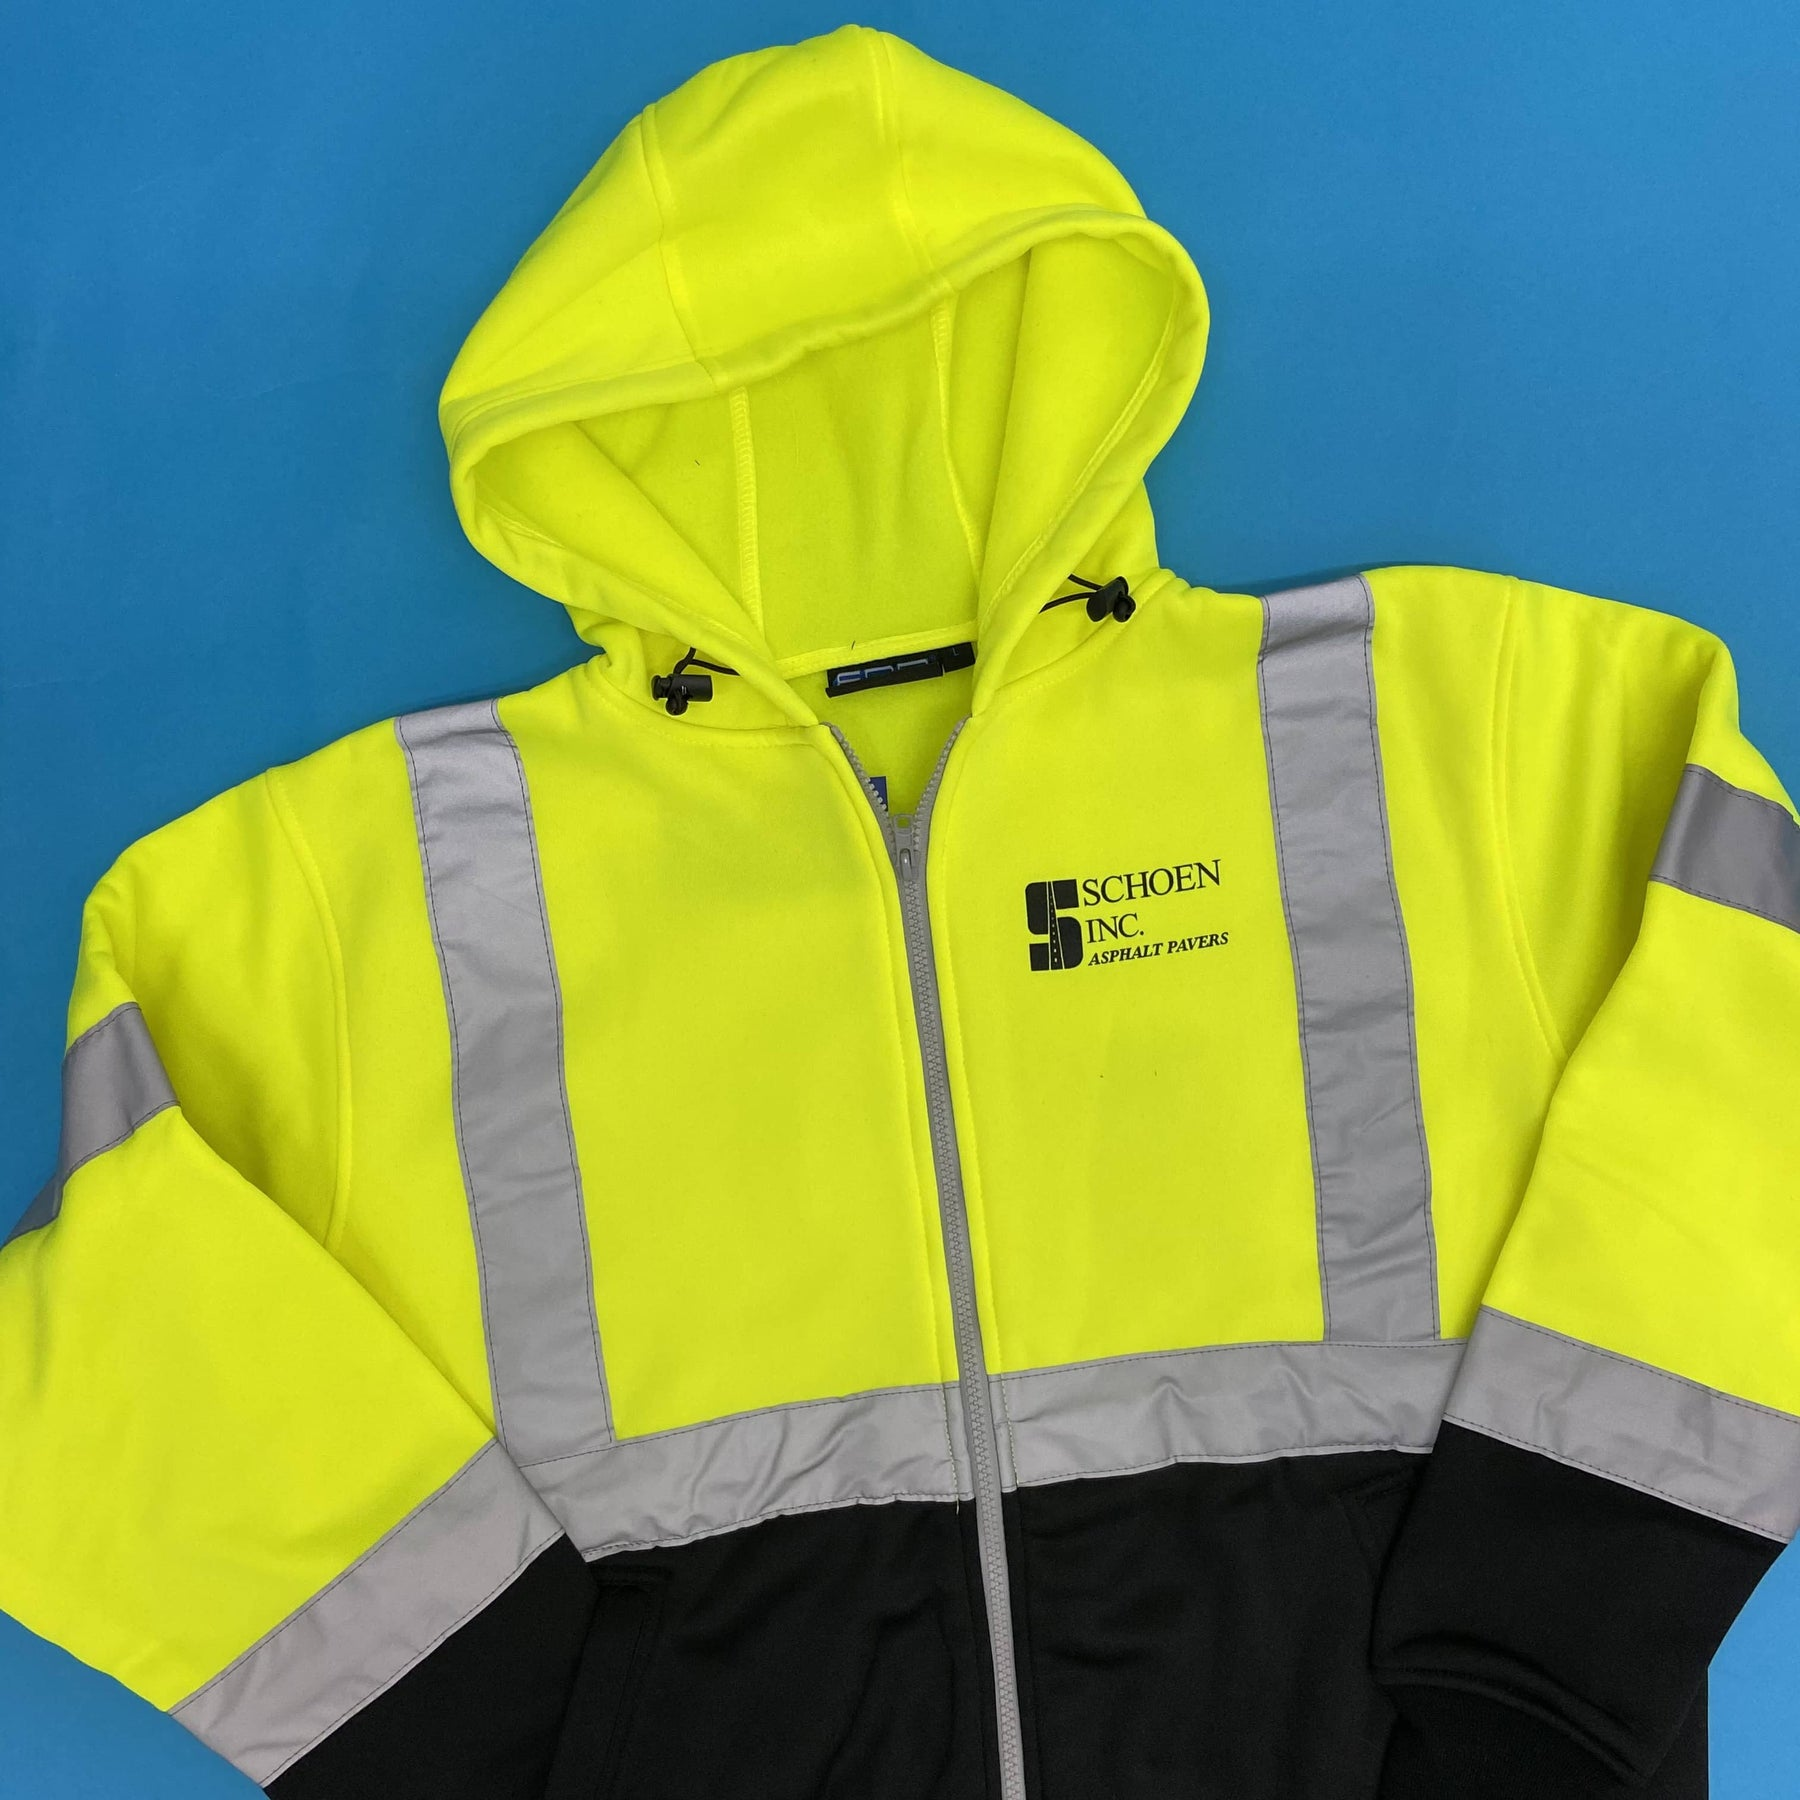 Custom safety shirts and hi vis jackets with logo for asphalt paving company [Schoen Inc Asphalt Pavers]